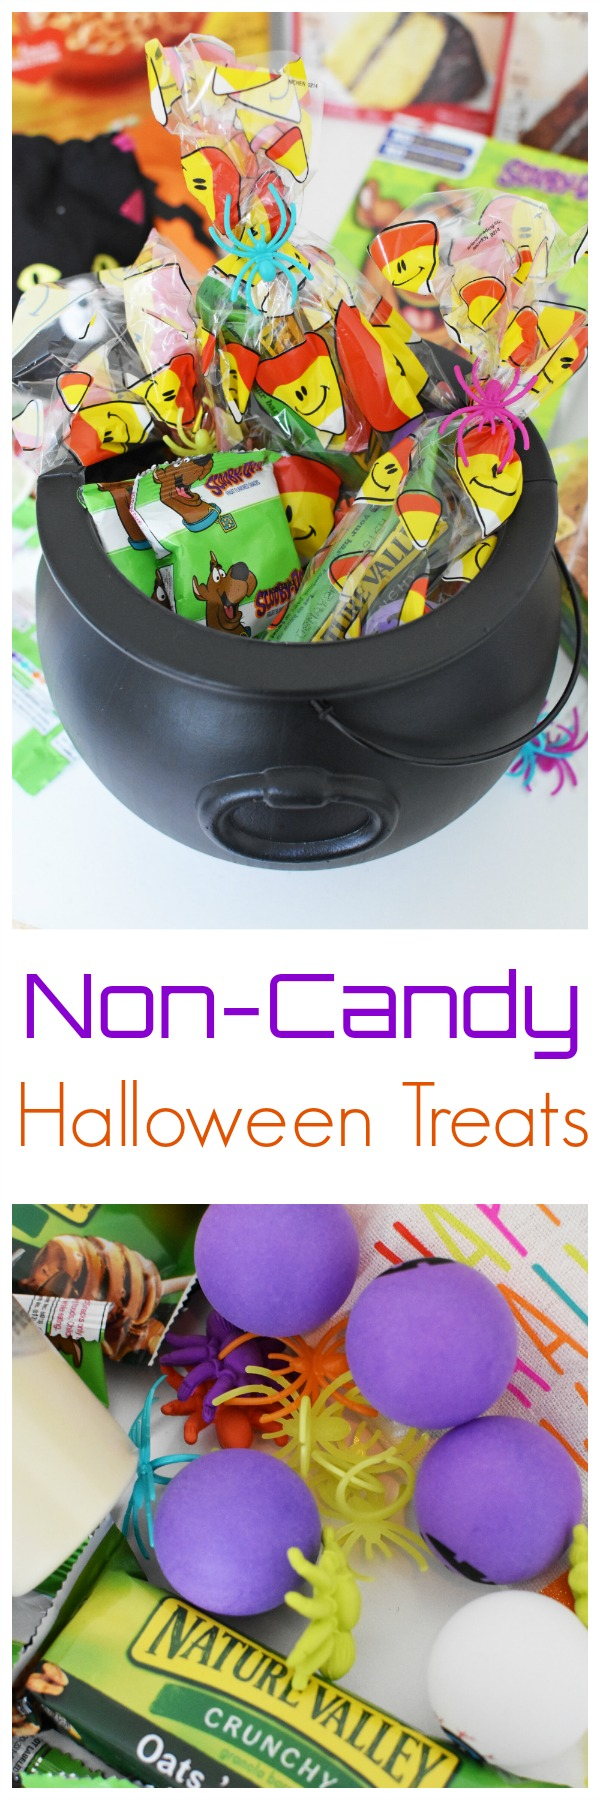 Non-Candy Halloween Ideas +a Shaw's Stock Up Sale! Get Non-Candy Halloween treats ideas and inspiration! Plus, check out Shaw's to stock up on goodies!! AD